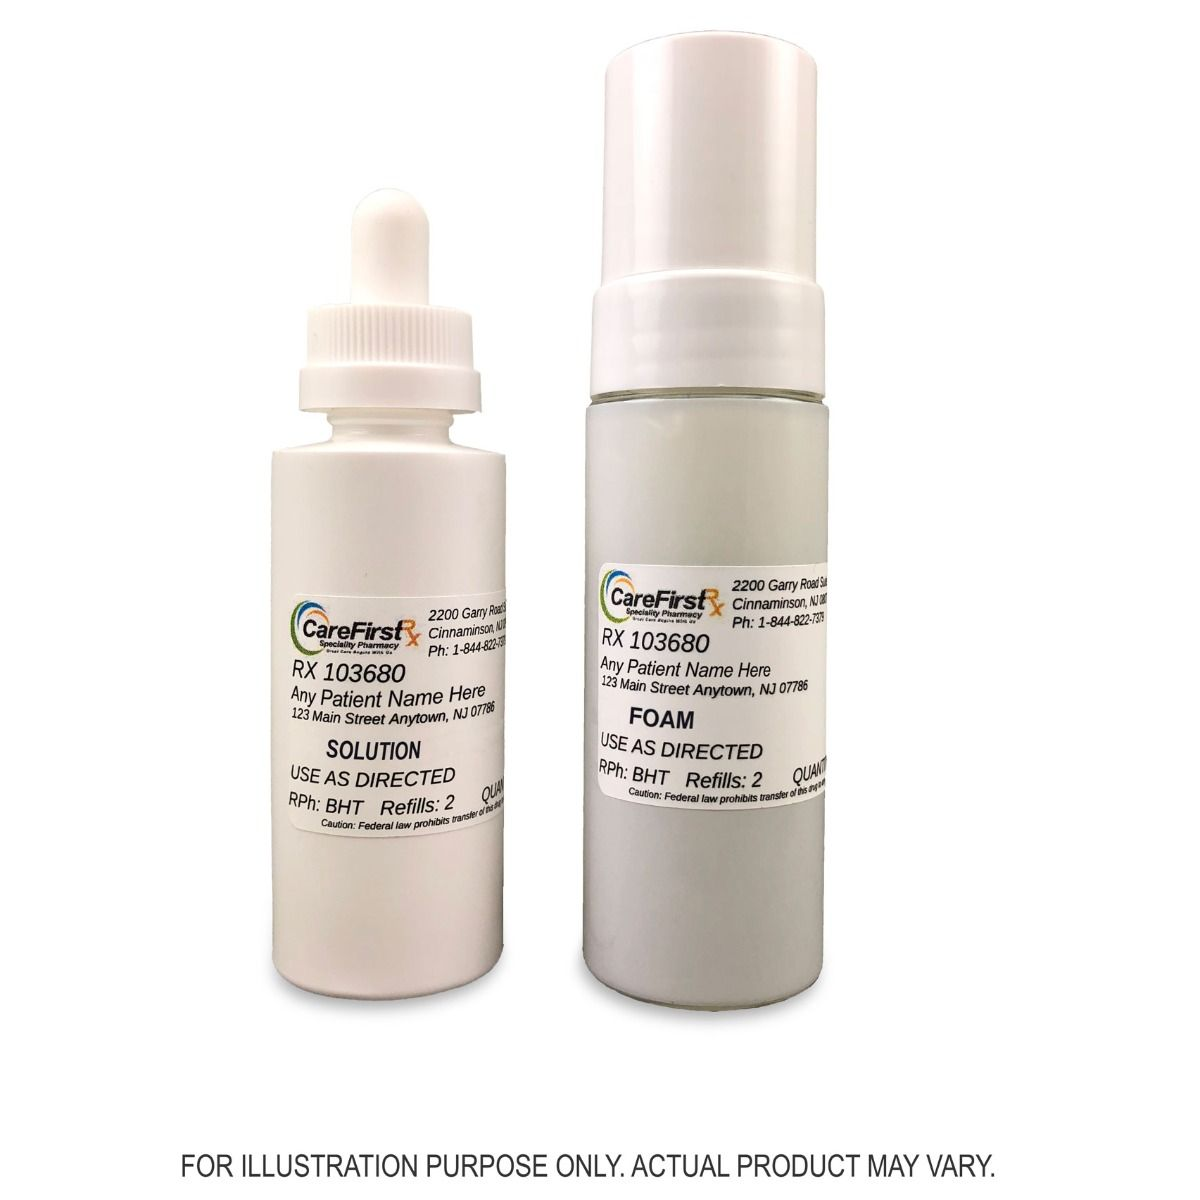 Latanoprost Minoxidil Finasteride Topical Foam Solution Compounded